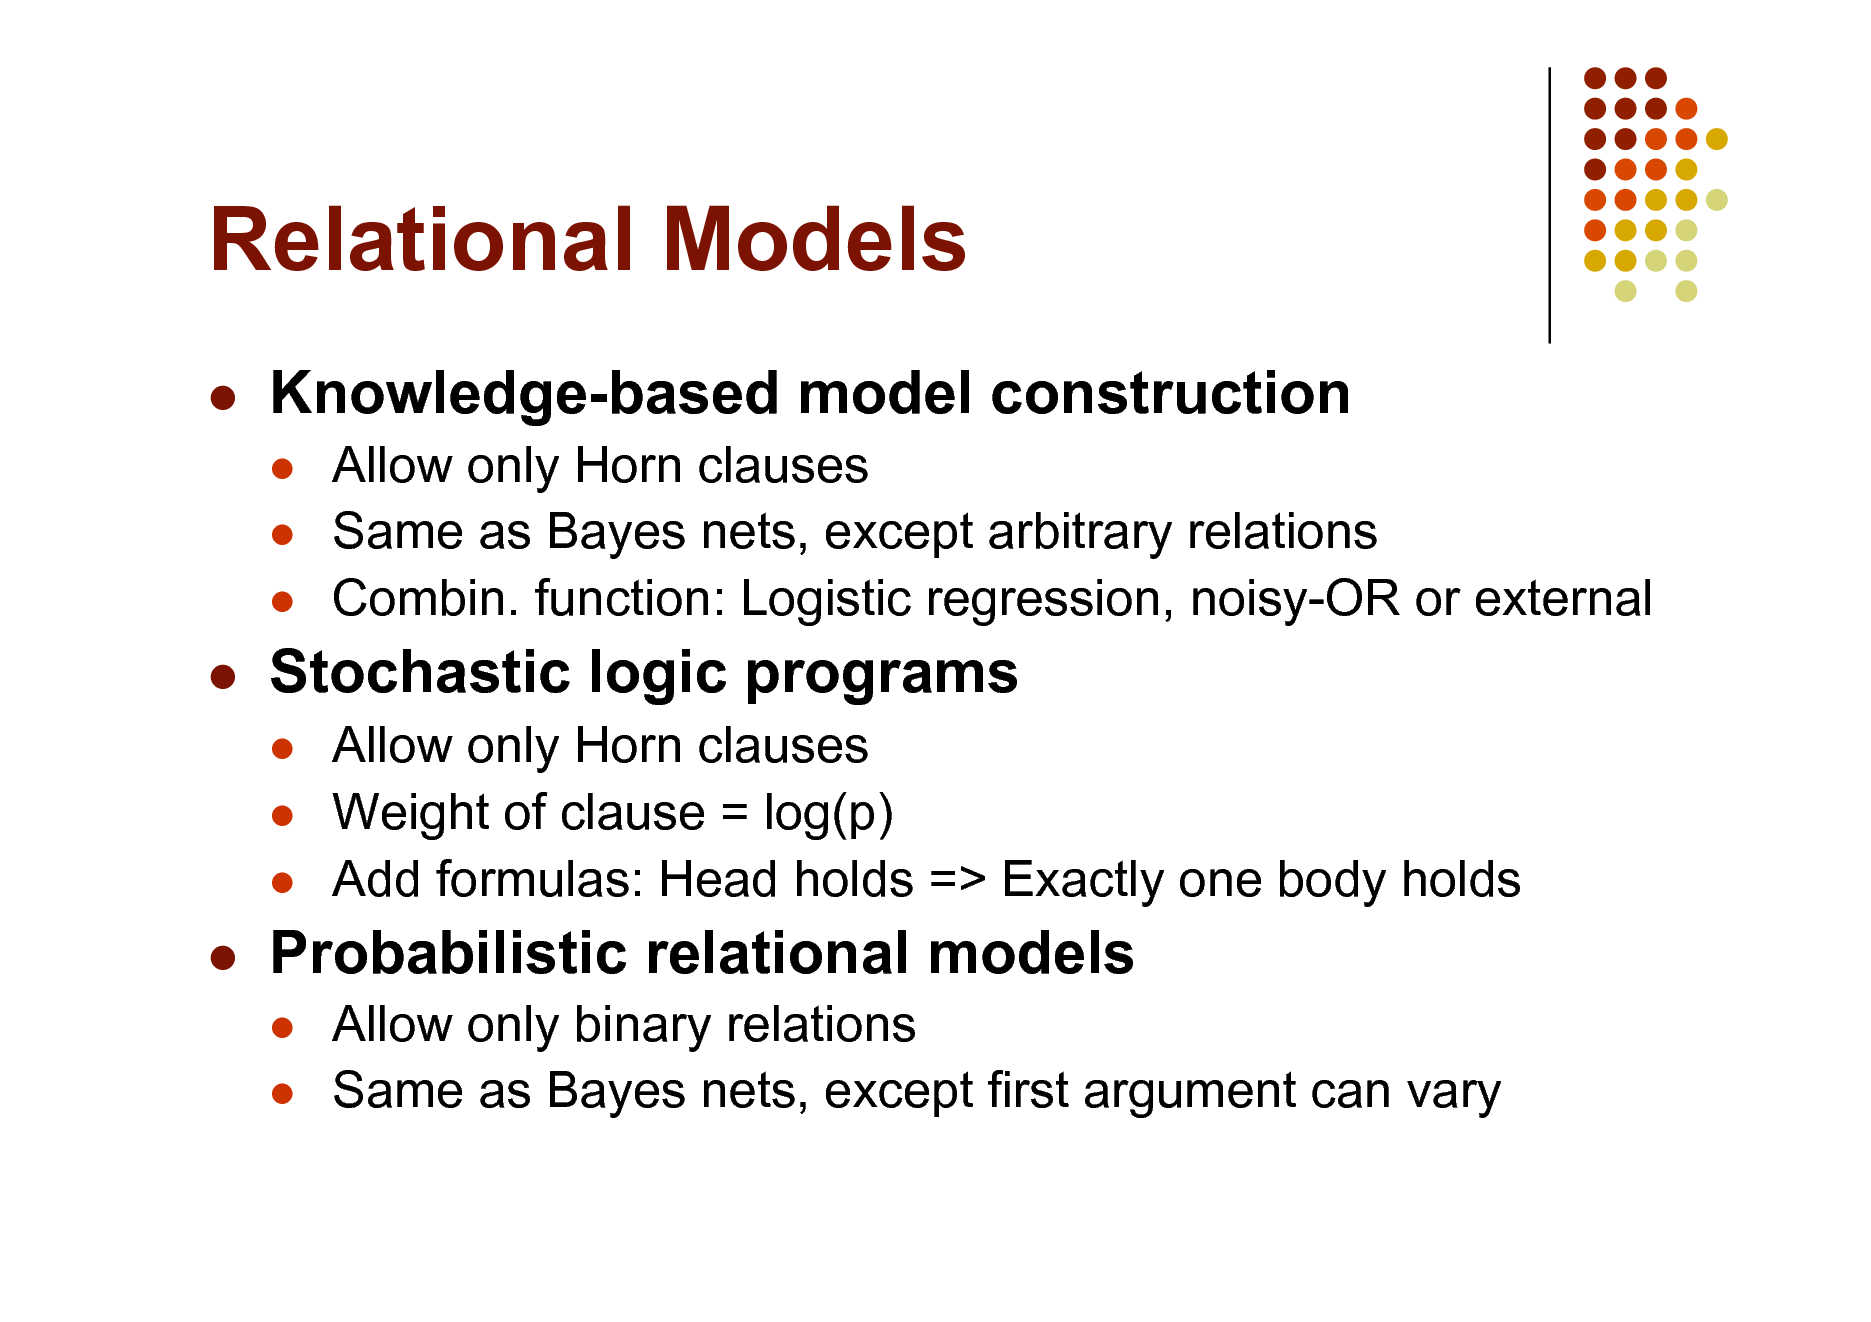 Slide: Relational Models   Knowledge-based model construction     Allow only Horn clauses Same as Bayes nets, except arbitrary relations Combin. function: Logistic regression, noisy-OR or external Allow only Horn clauses Weight of clause = log(p) Add formulas: Head holds => Exactly one body holds Allow only binary relations Same as Bayes nets, except first argument can vary    Stochastic logic programs       Probabilistic relational models